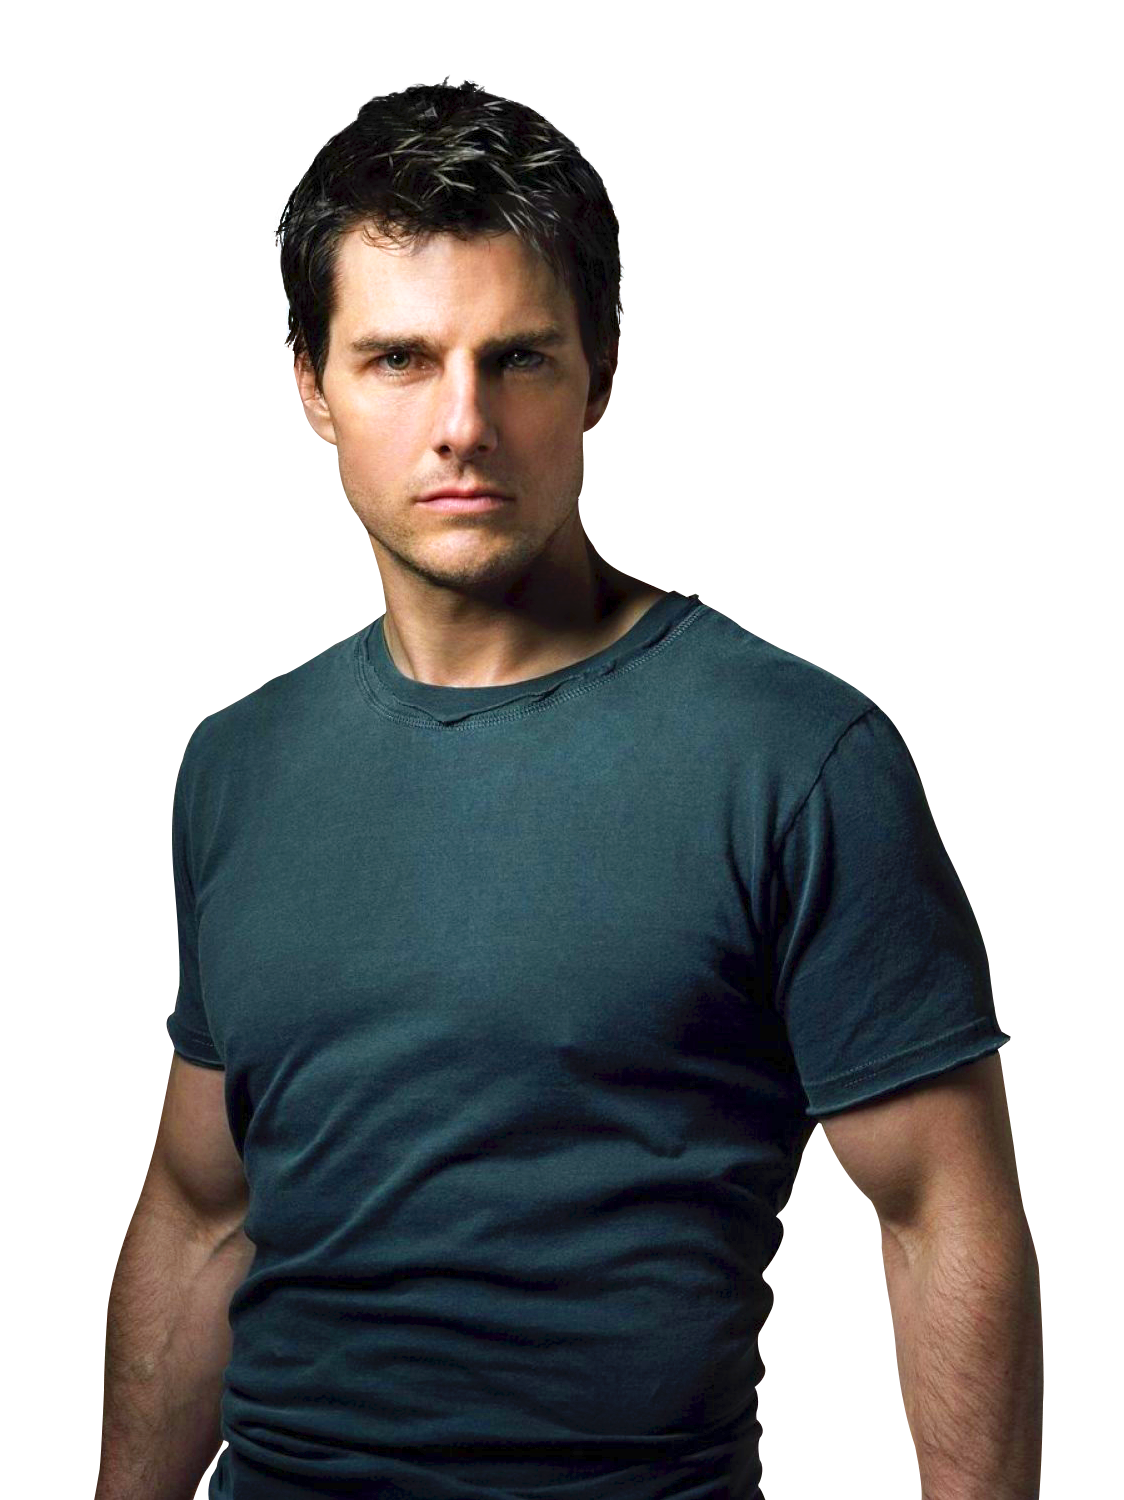 Tom Cruise Transparent Background - Tom Cruise PNG